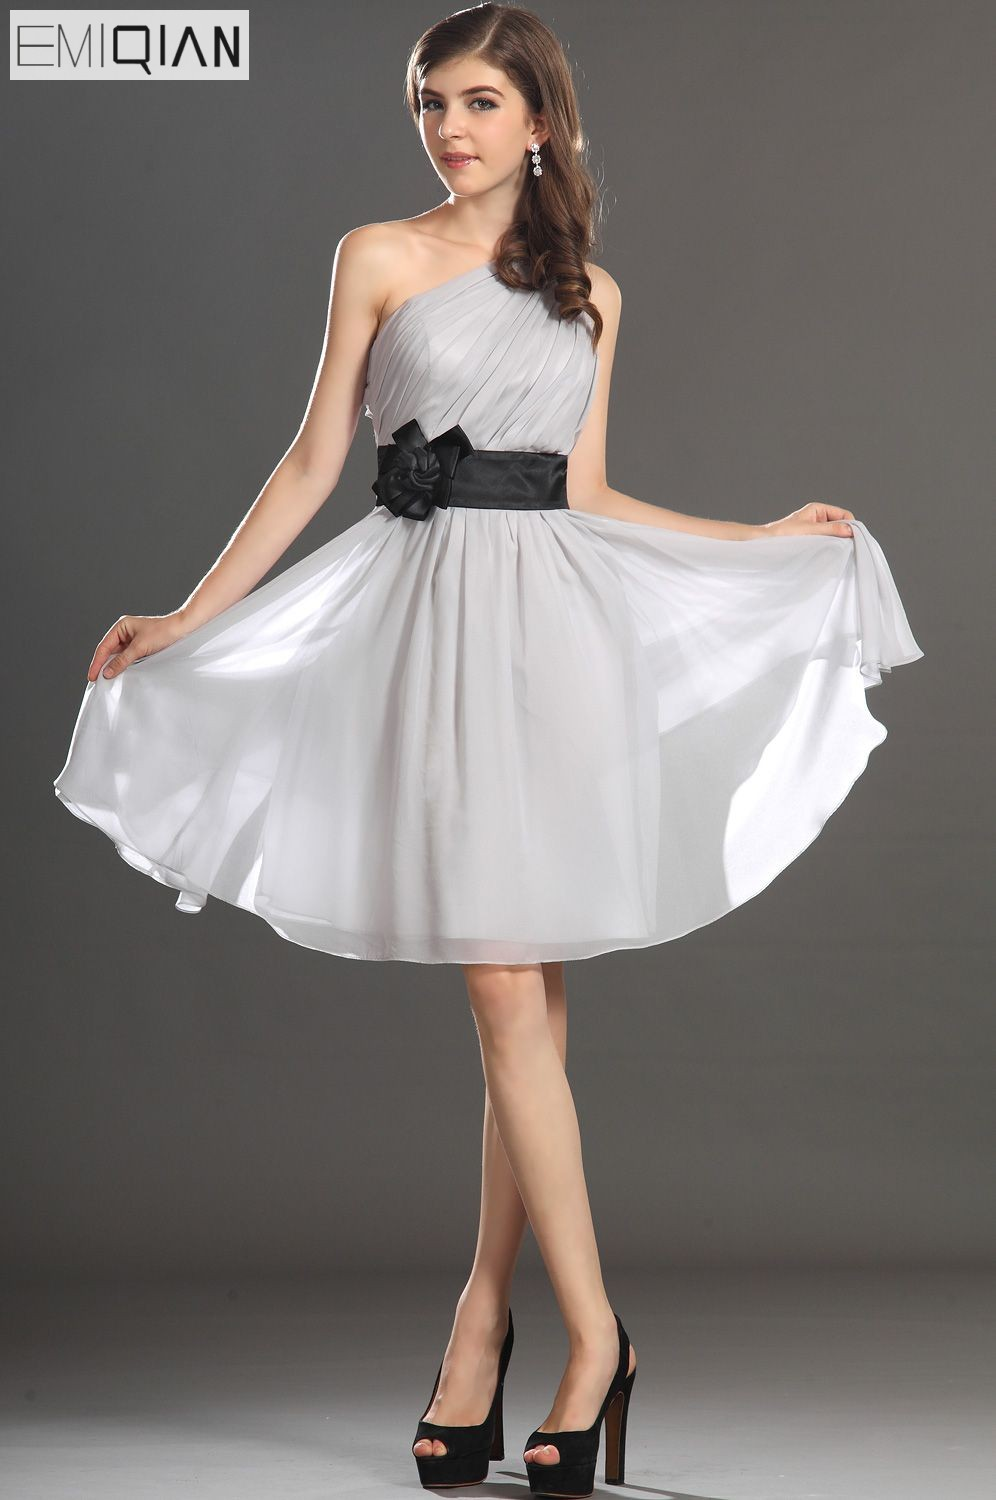 Free Shipping New Gorgeous One Shoulder Black Sach Grey Chiffon Cocktail Dress